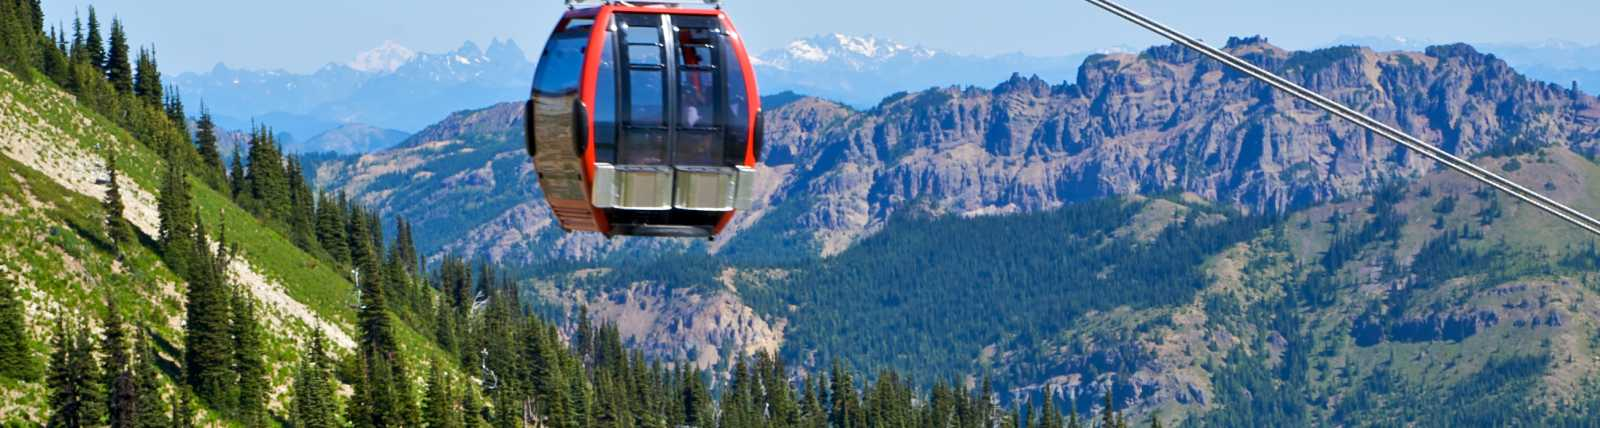 The Mt. Rainier Gondola